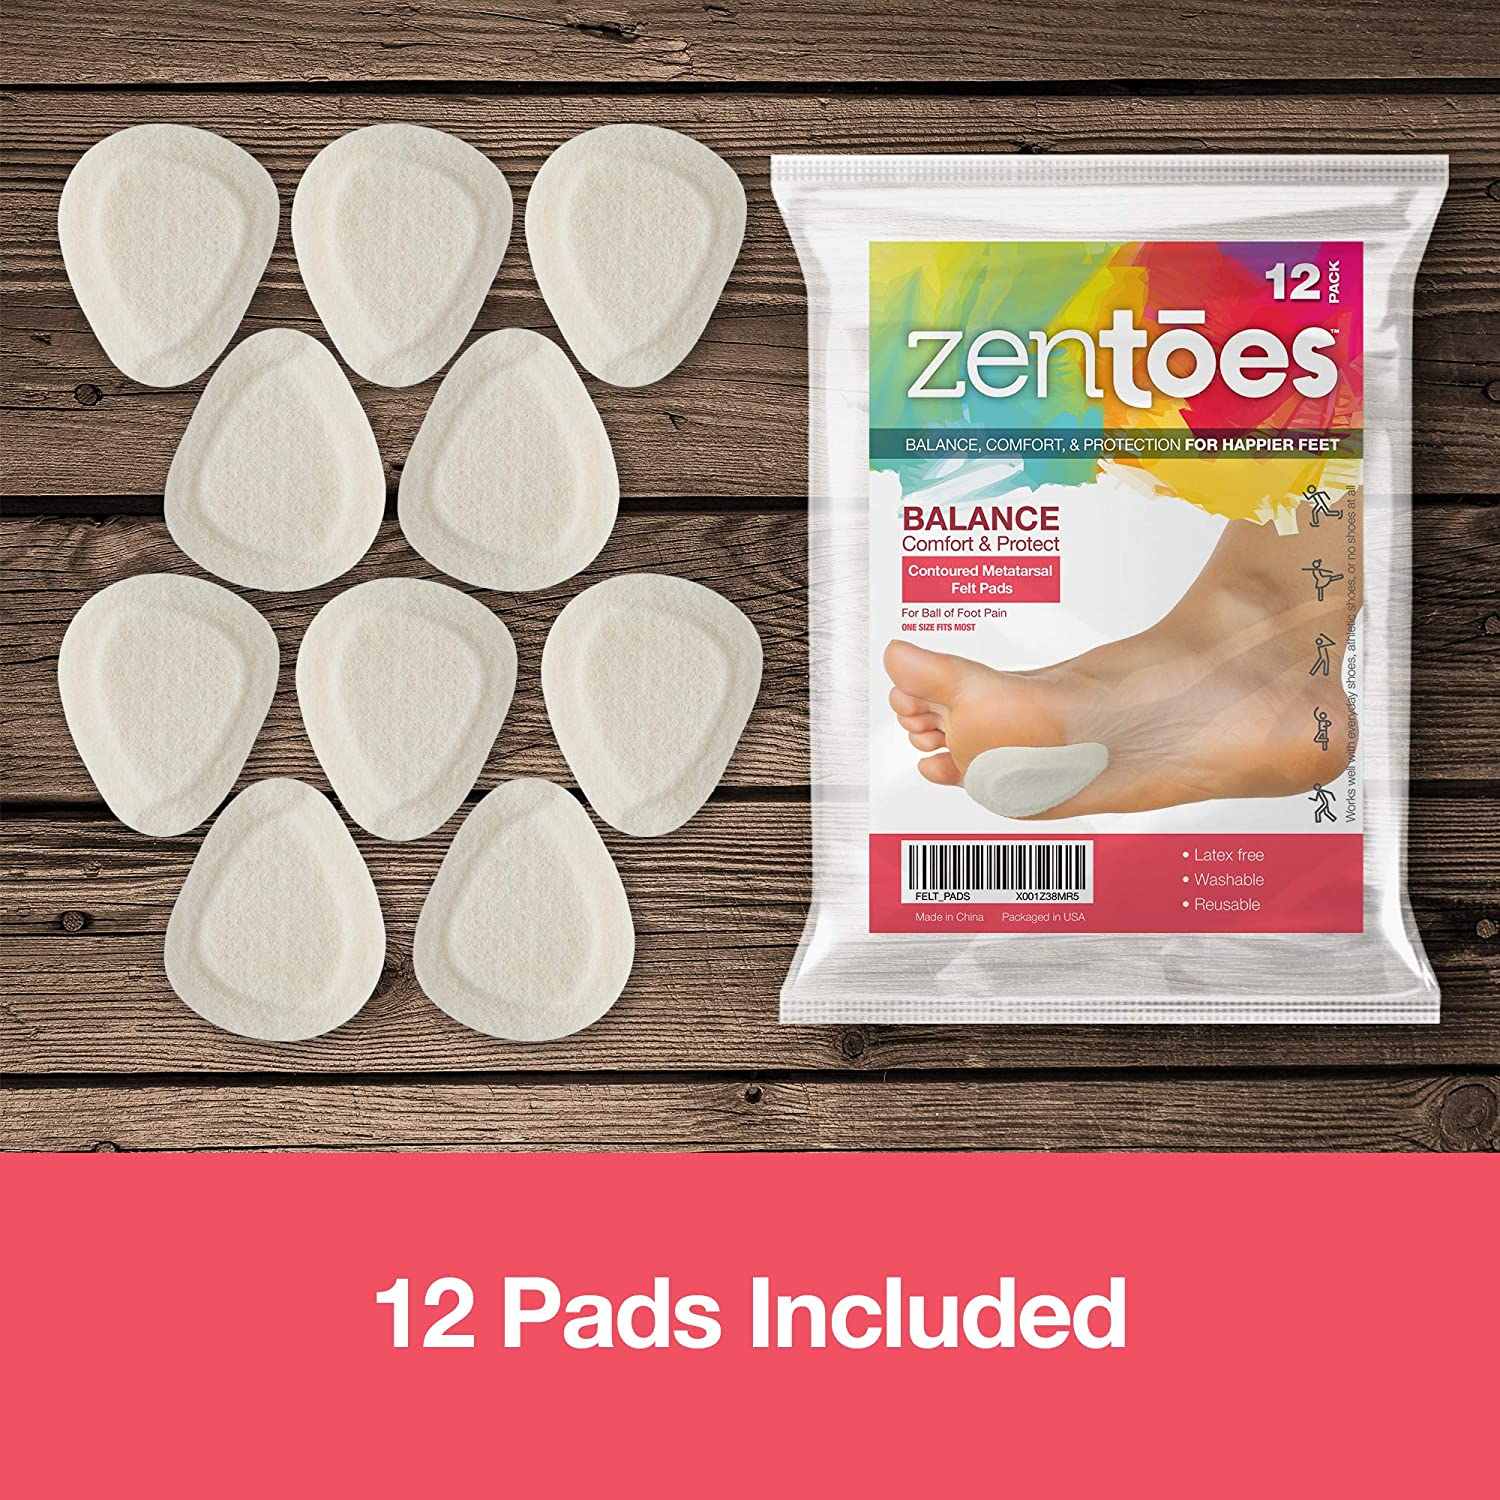 "Adhere to Shoe Insoles or Feet 6 Pair Pack /¼/"" Contoured Adhesive Ball of Foot Cushions ZenToes Metatarsal Felt Pads"